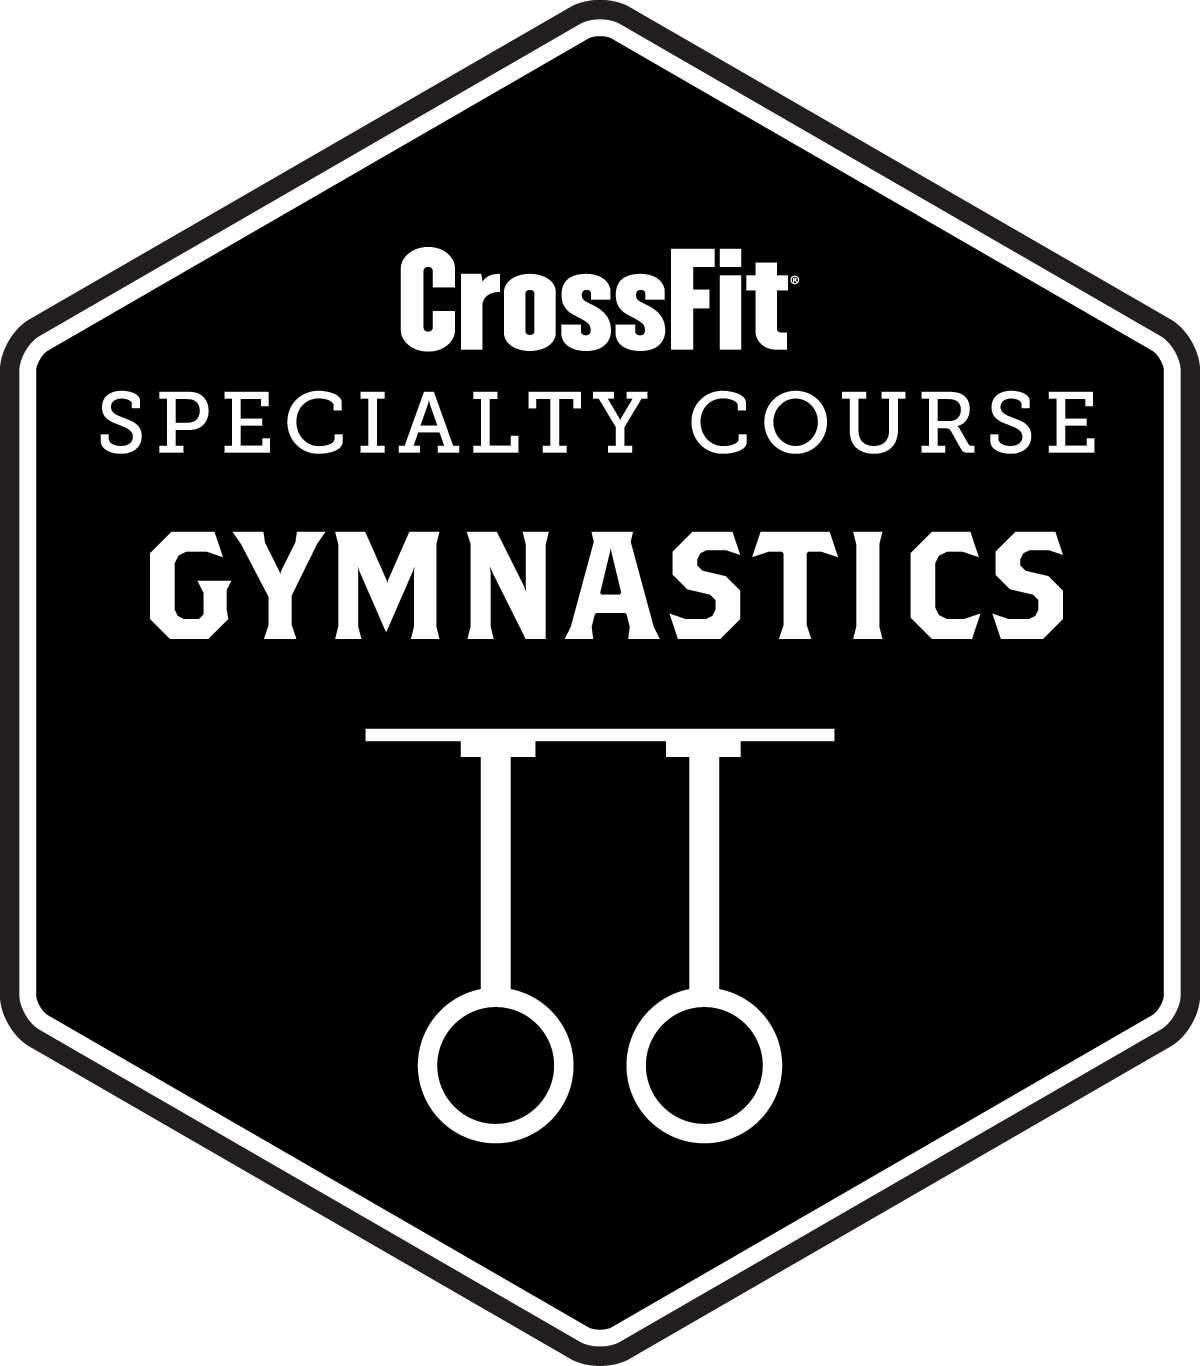 CrossFit Specialty Course: Gymnastics